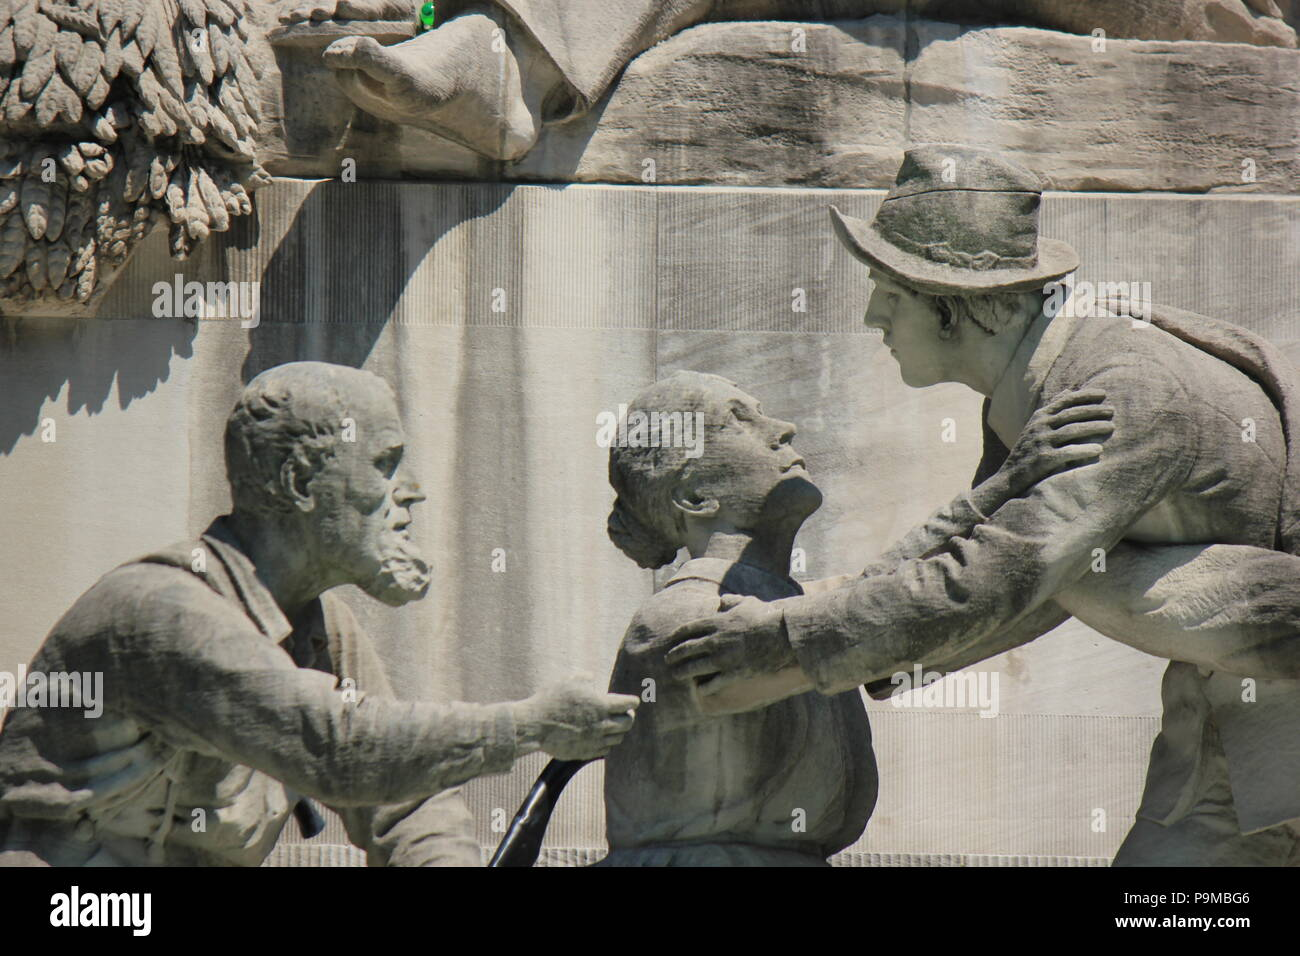 Scene from the Soldiers and Sailors Monument in Monument Circle in Indianapolis, Indiana. - Stock Image